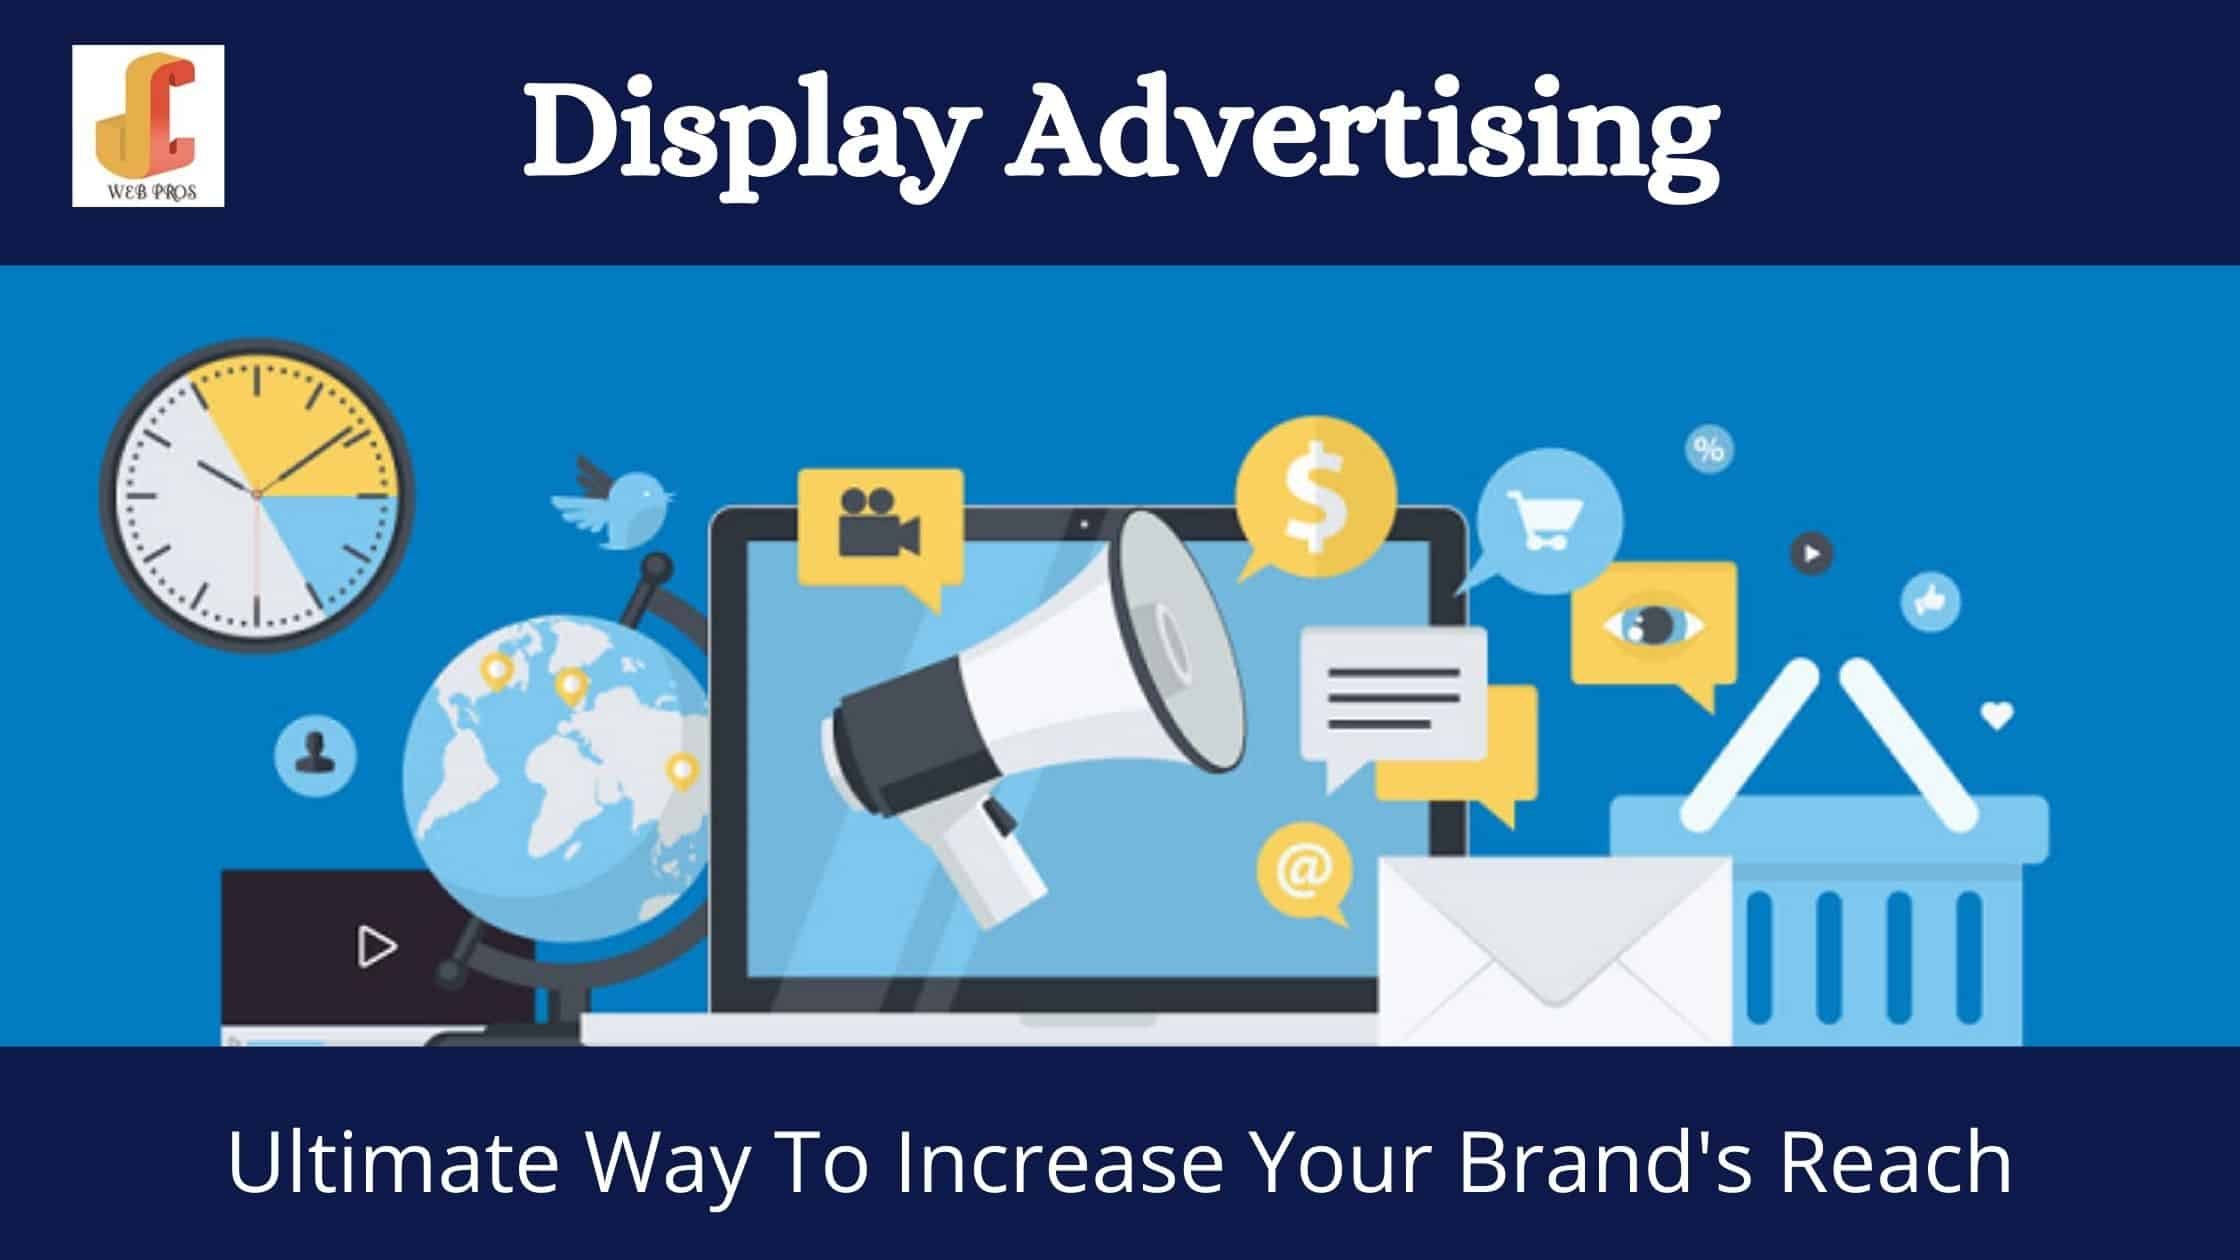 Focus on Display Advertising and Increase Your Reach